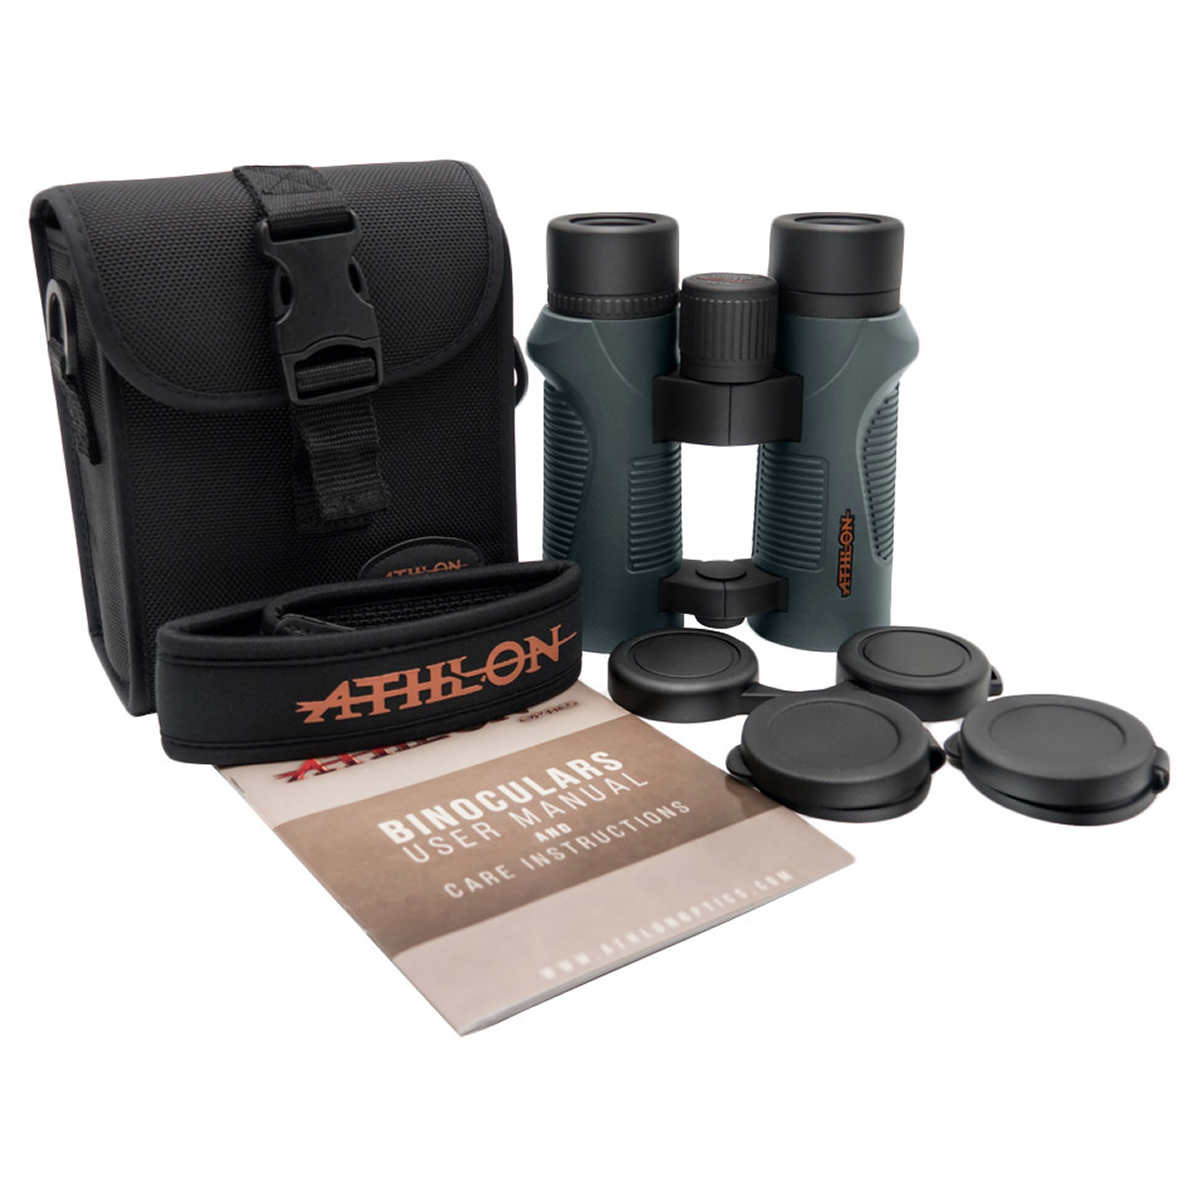 Athlon Argos 10x42 Binocular With Harness